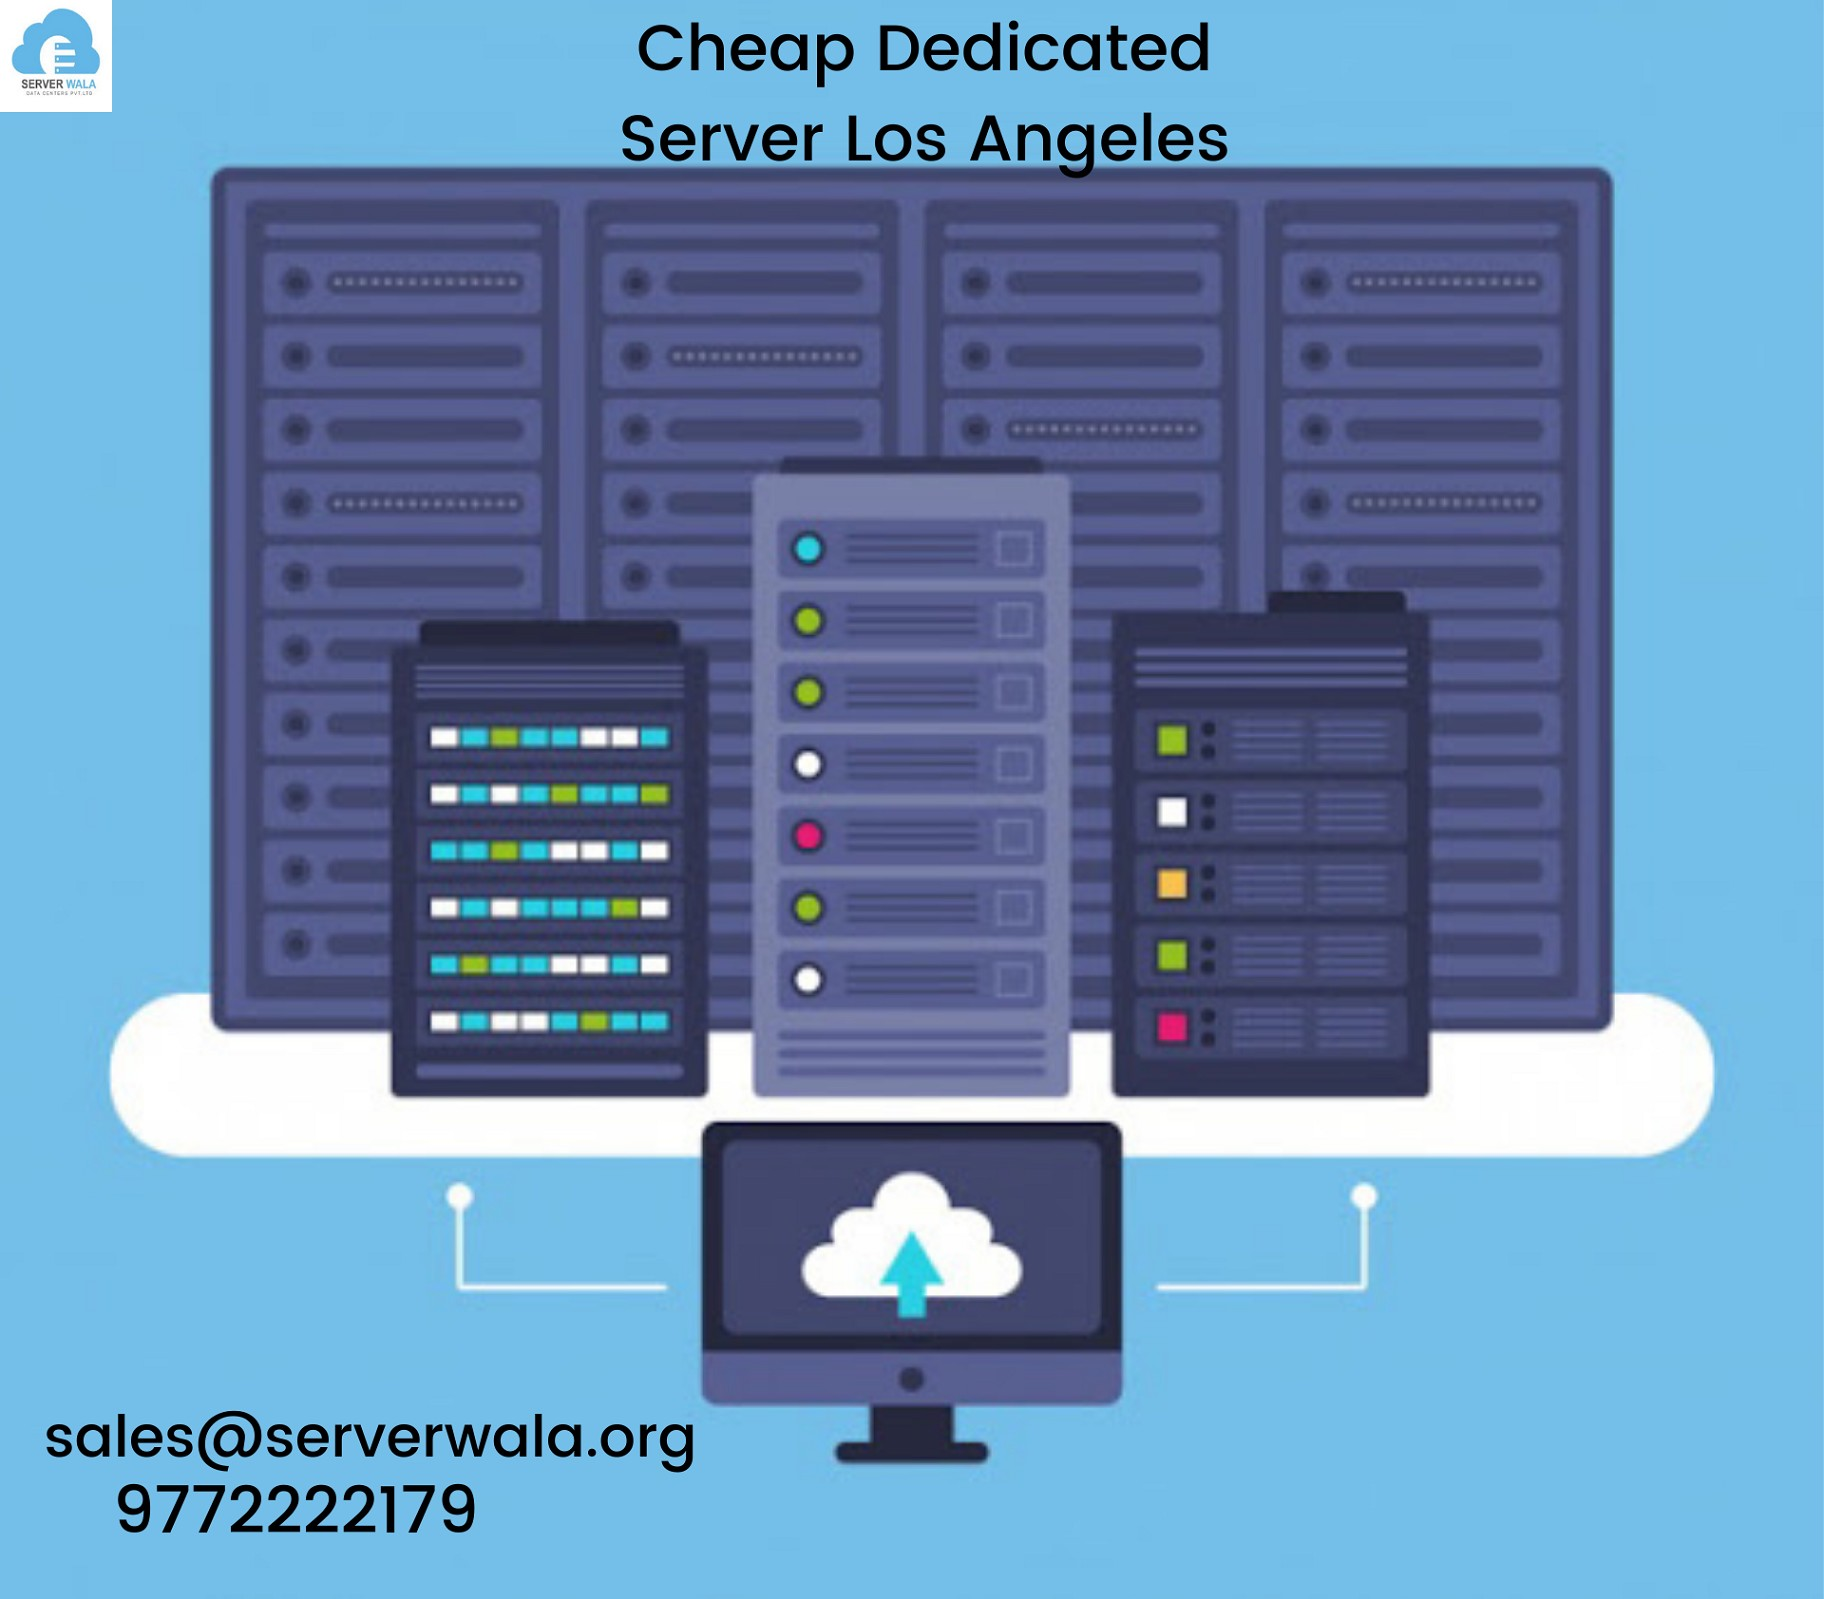 Cheap Dedicated Server Los Angeles